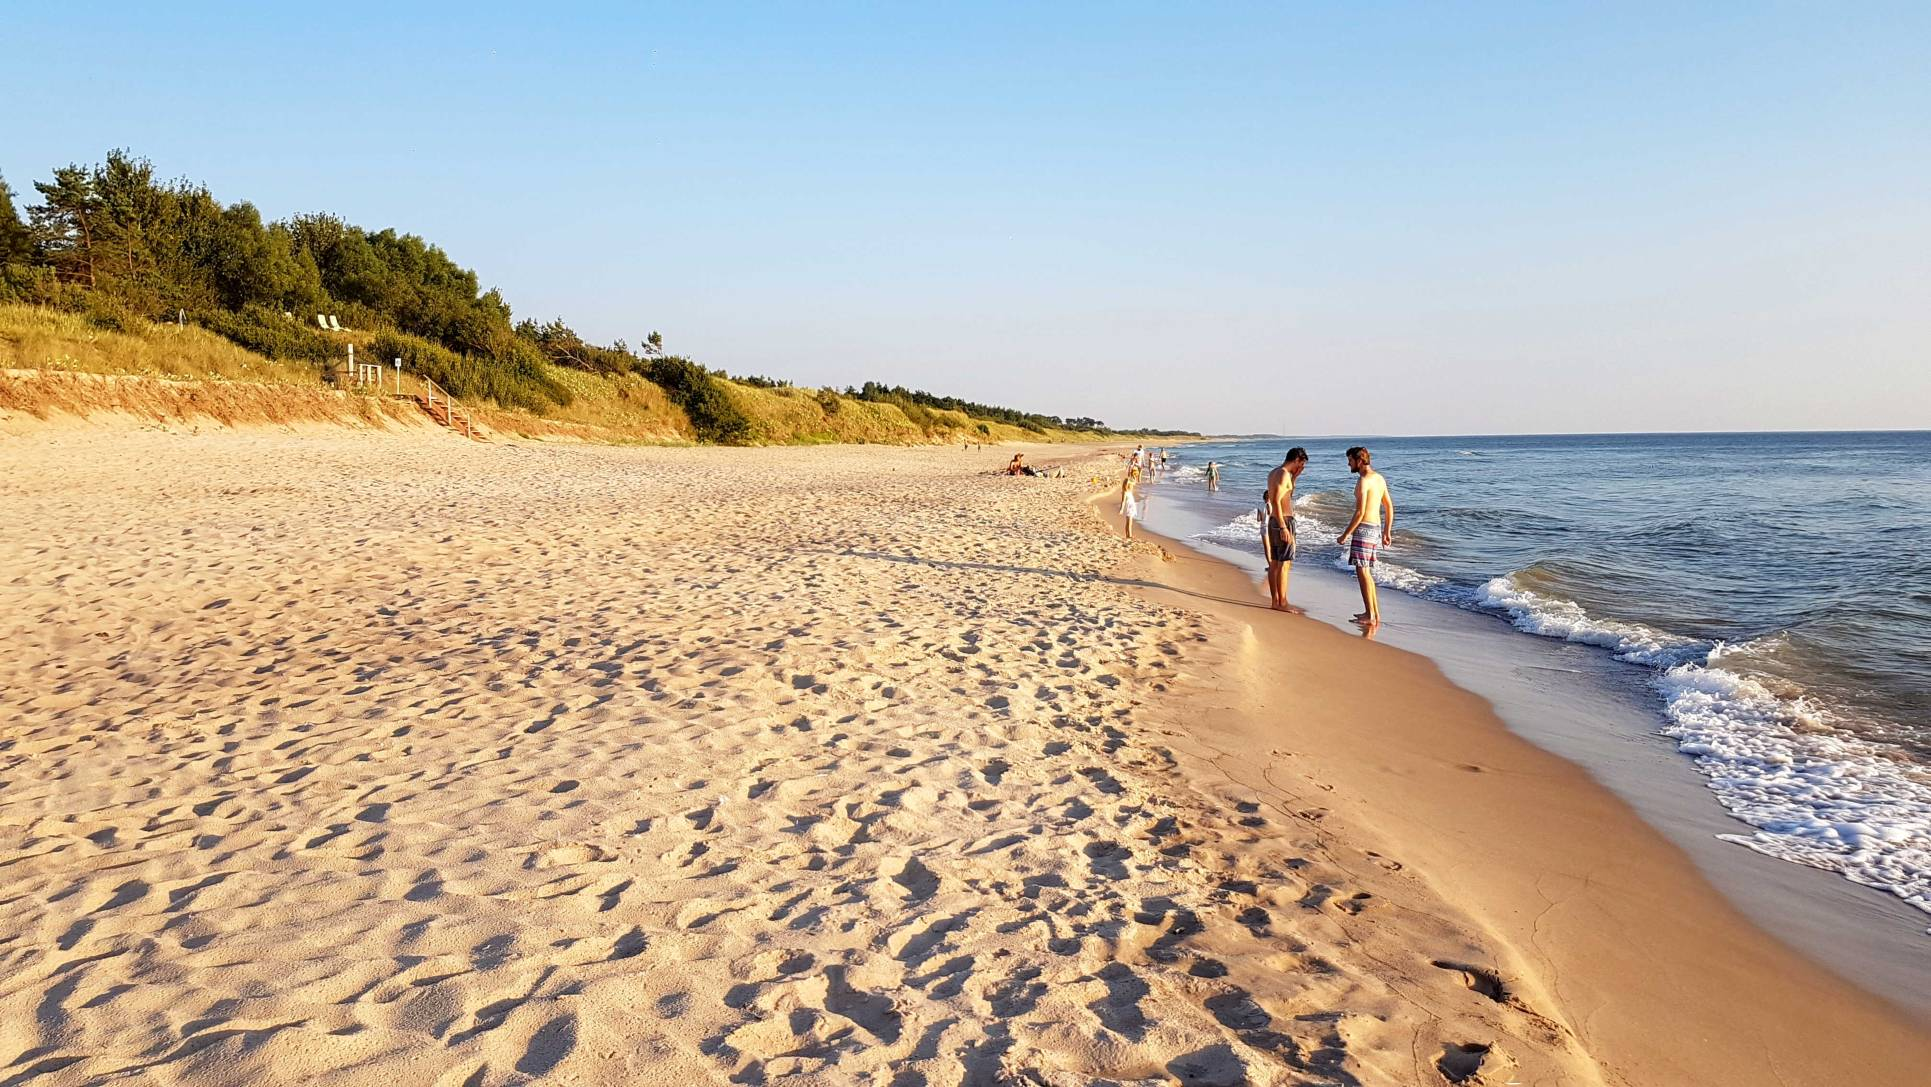 One of the best beaches in Latvia